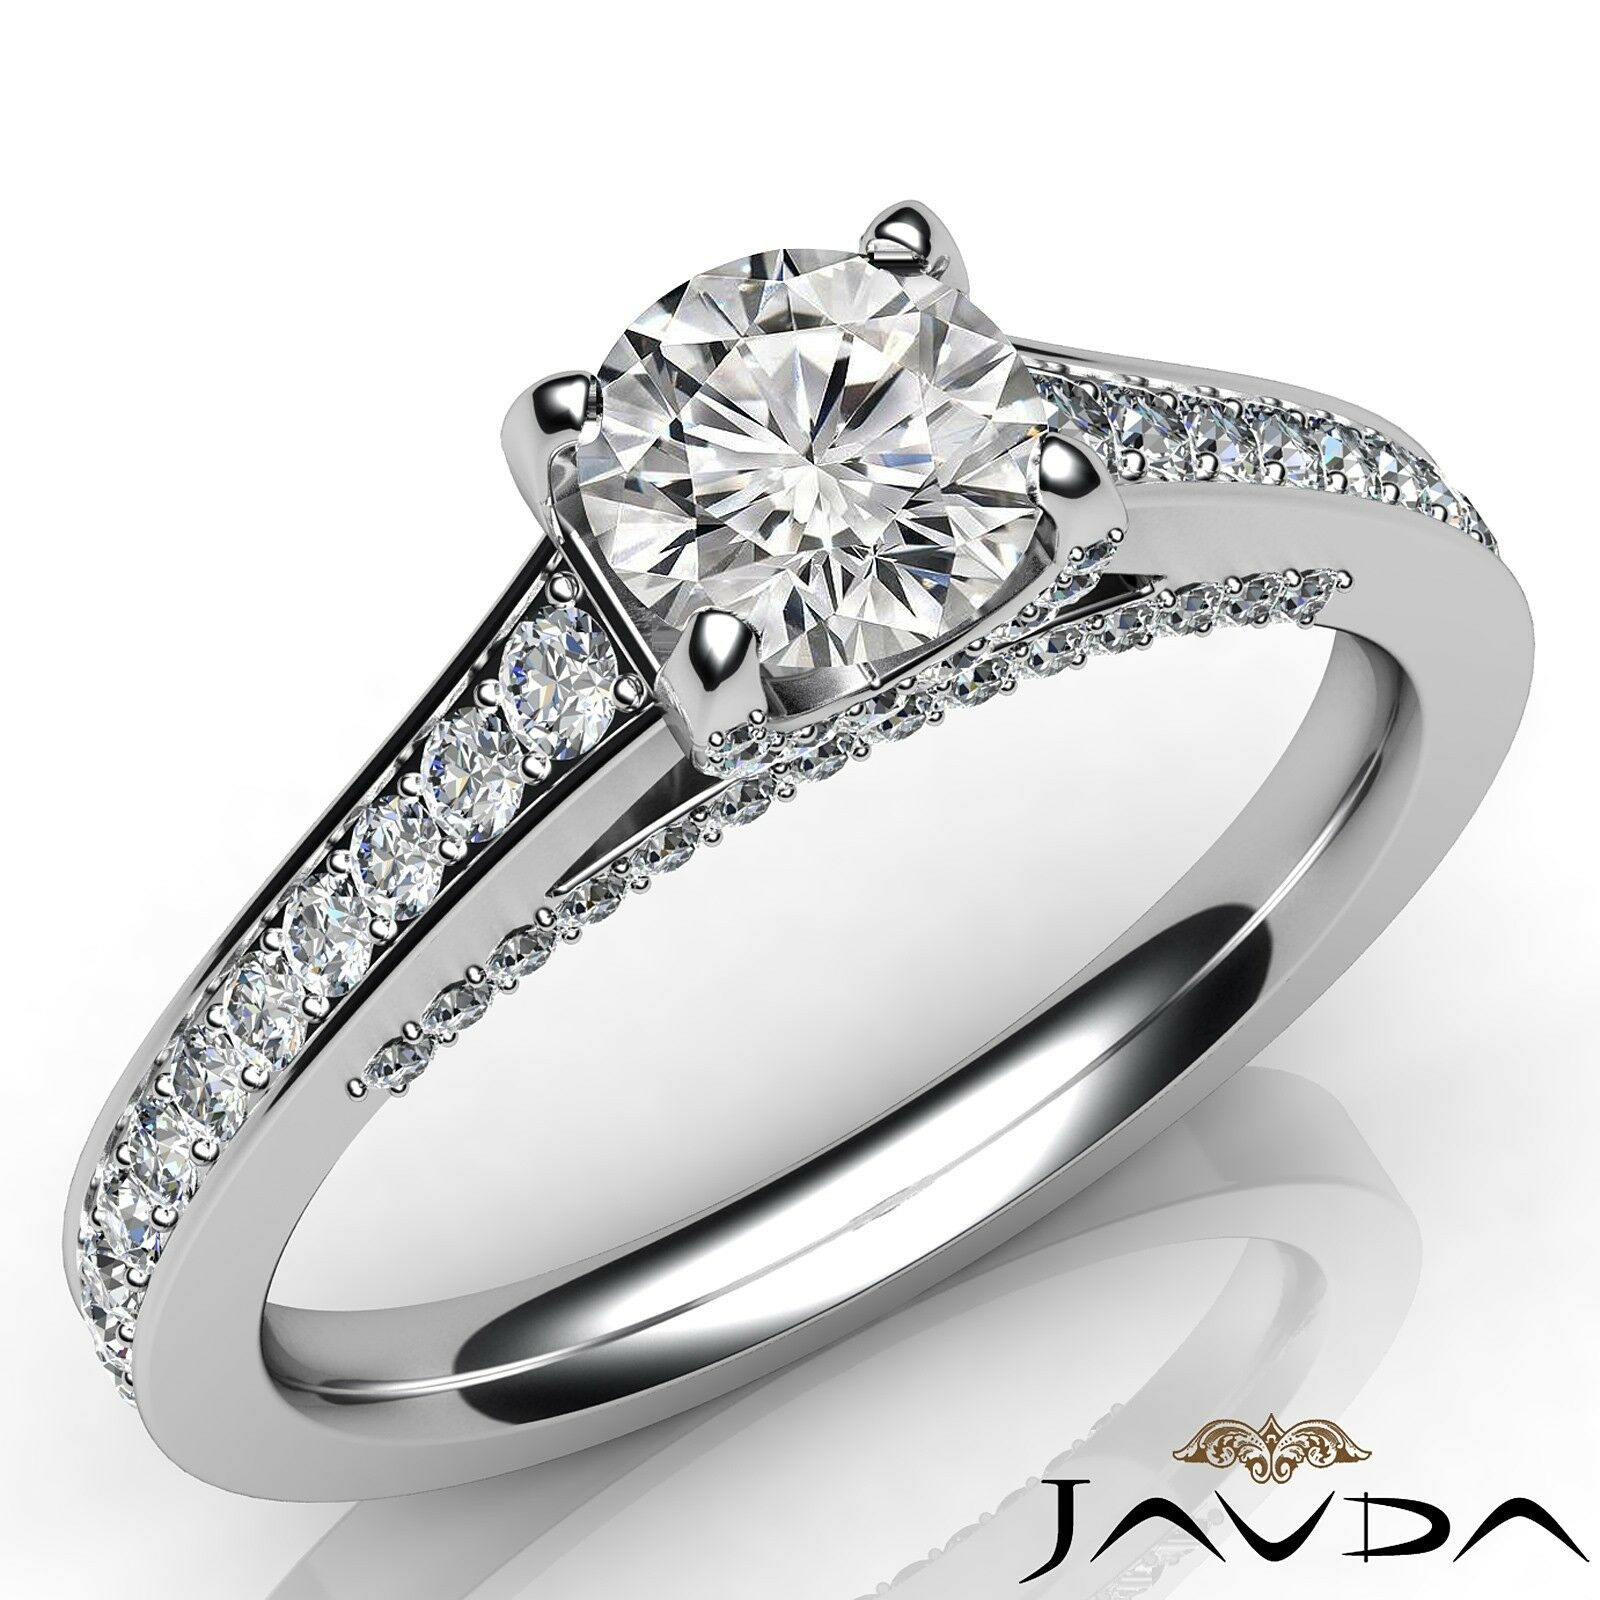 1.25ctw Brilliant Cut Round Diamond Engagement Ring GIA F-VVS2 White Gold Rings